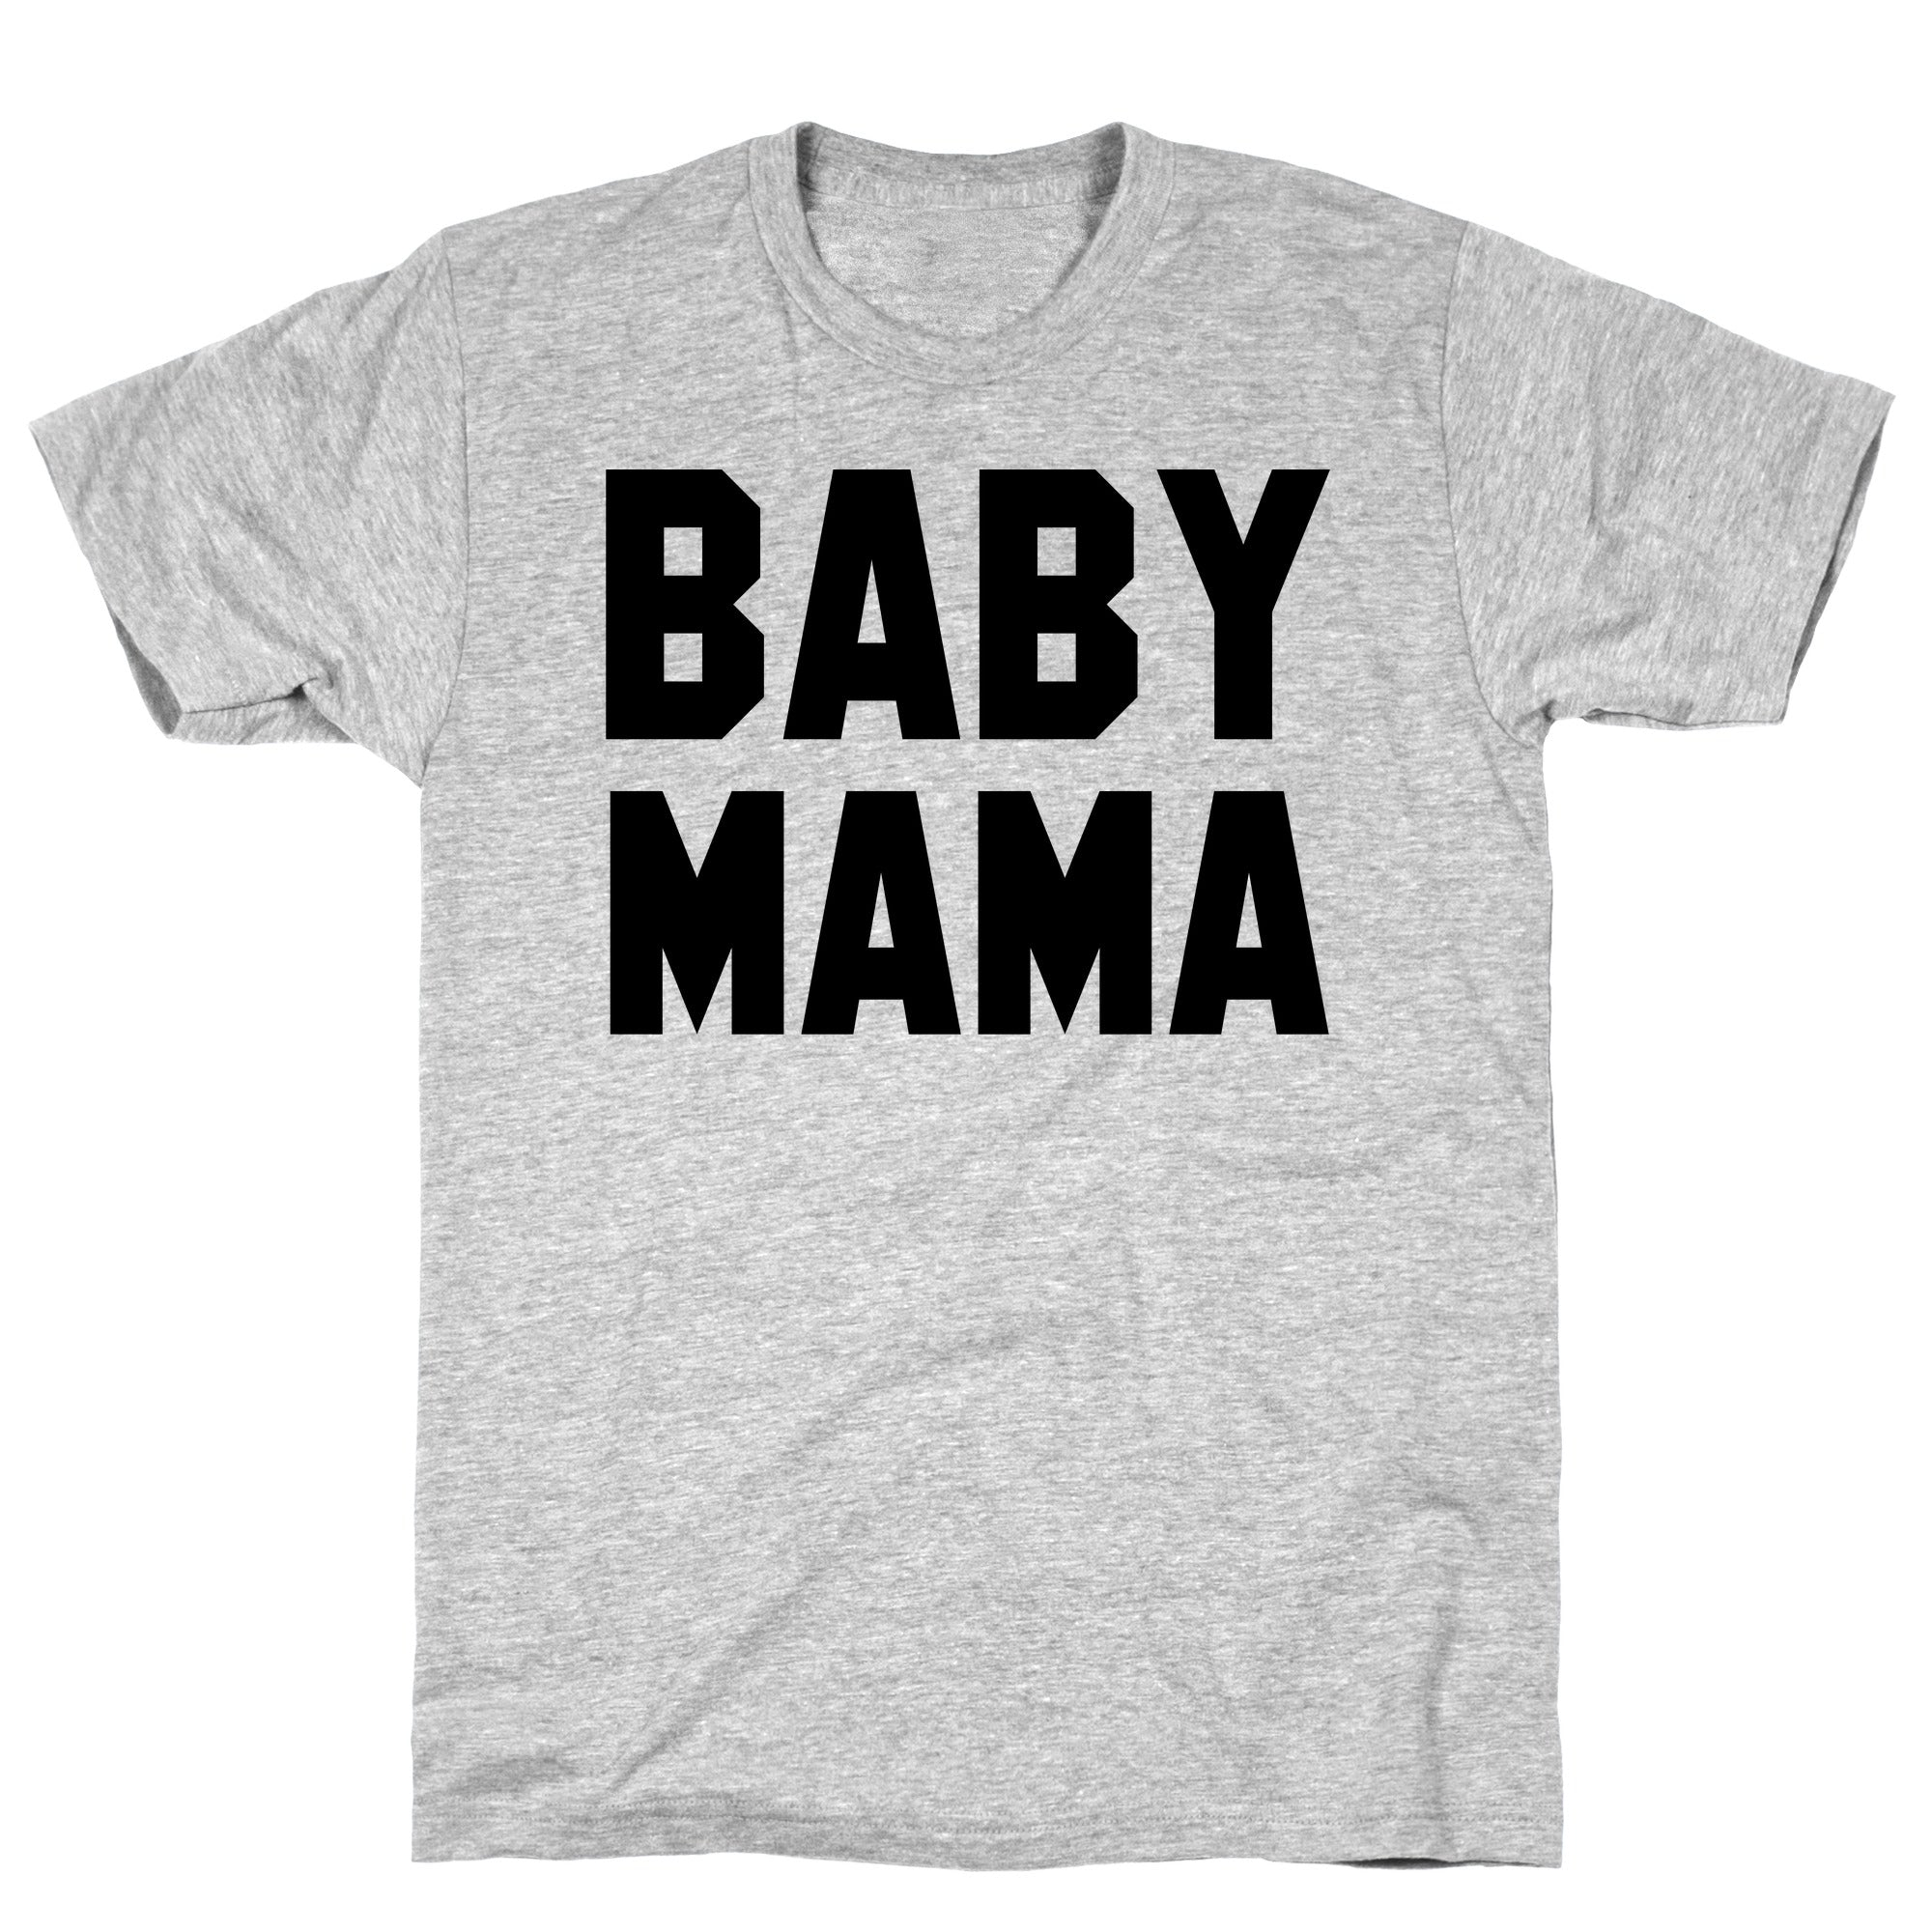 Baby Mama Athletic Gray Unisex Cotton Tee by LookH